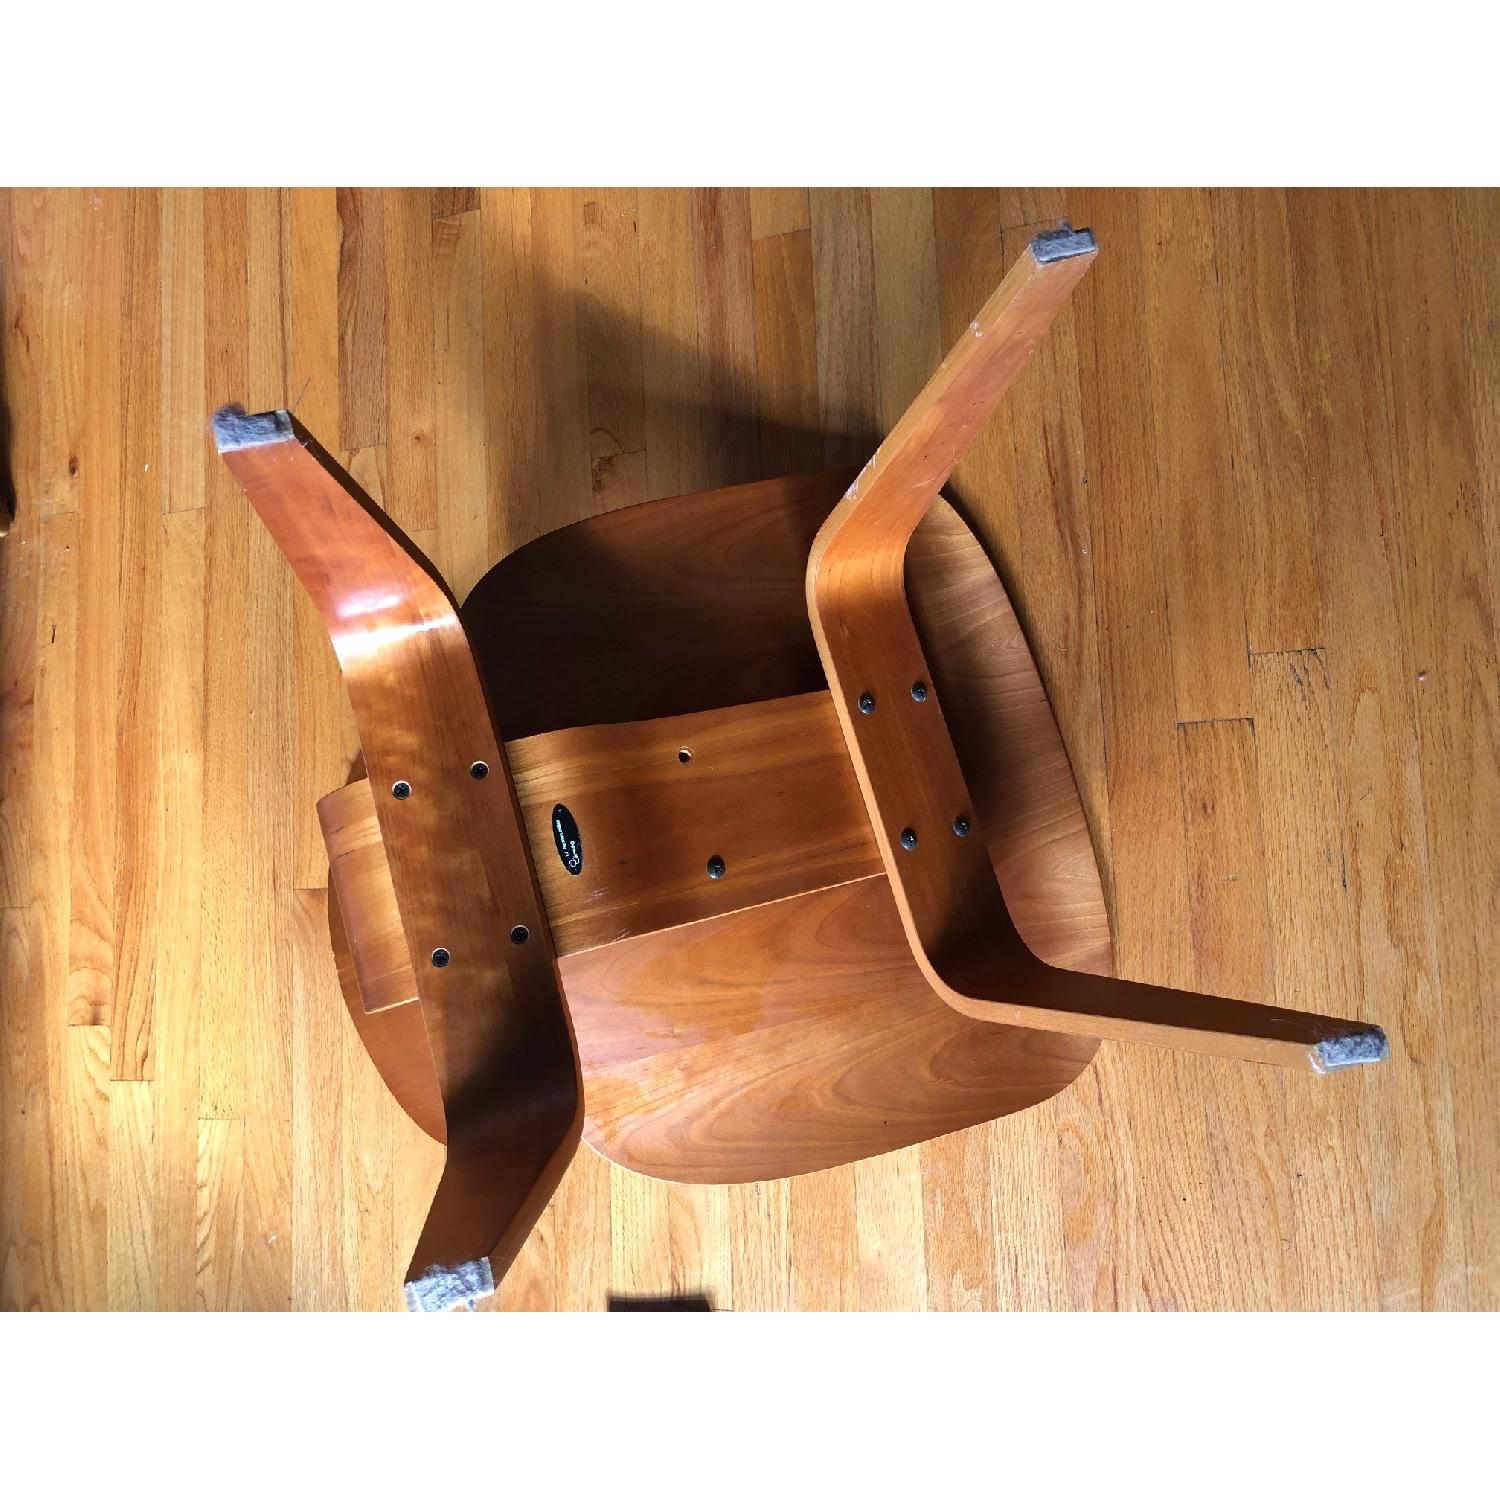 Herman Miller Eames LCW Walnut Chair - image-5